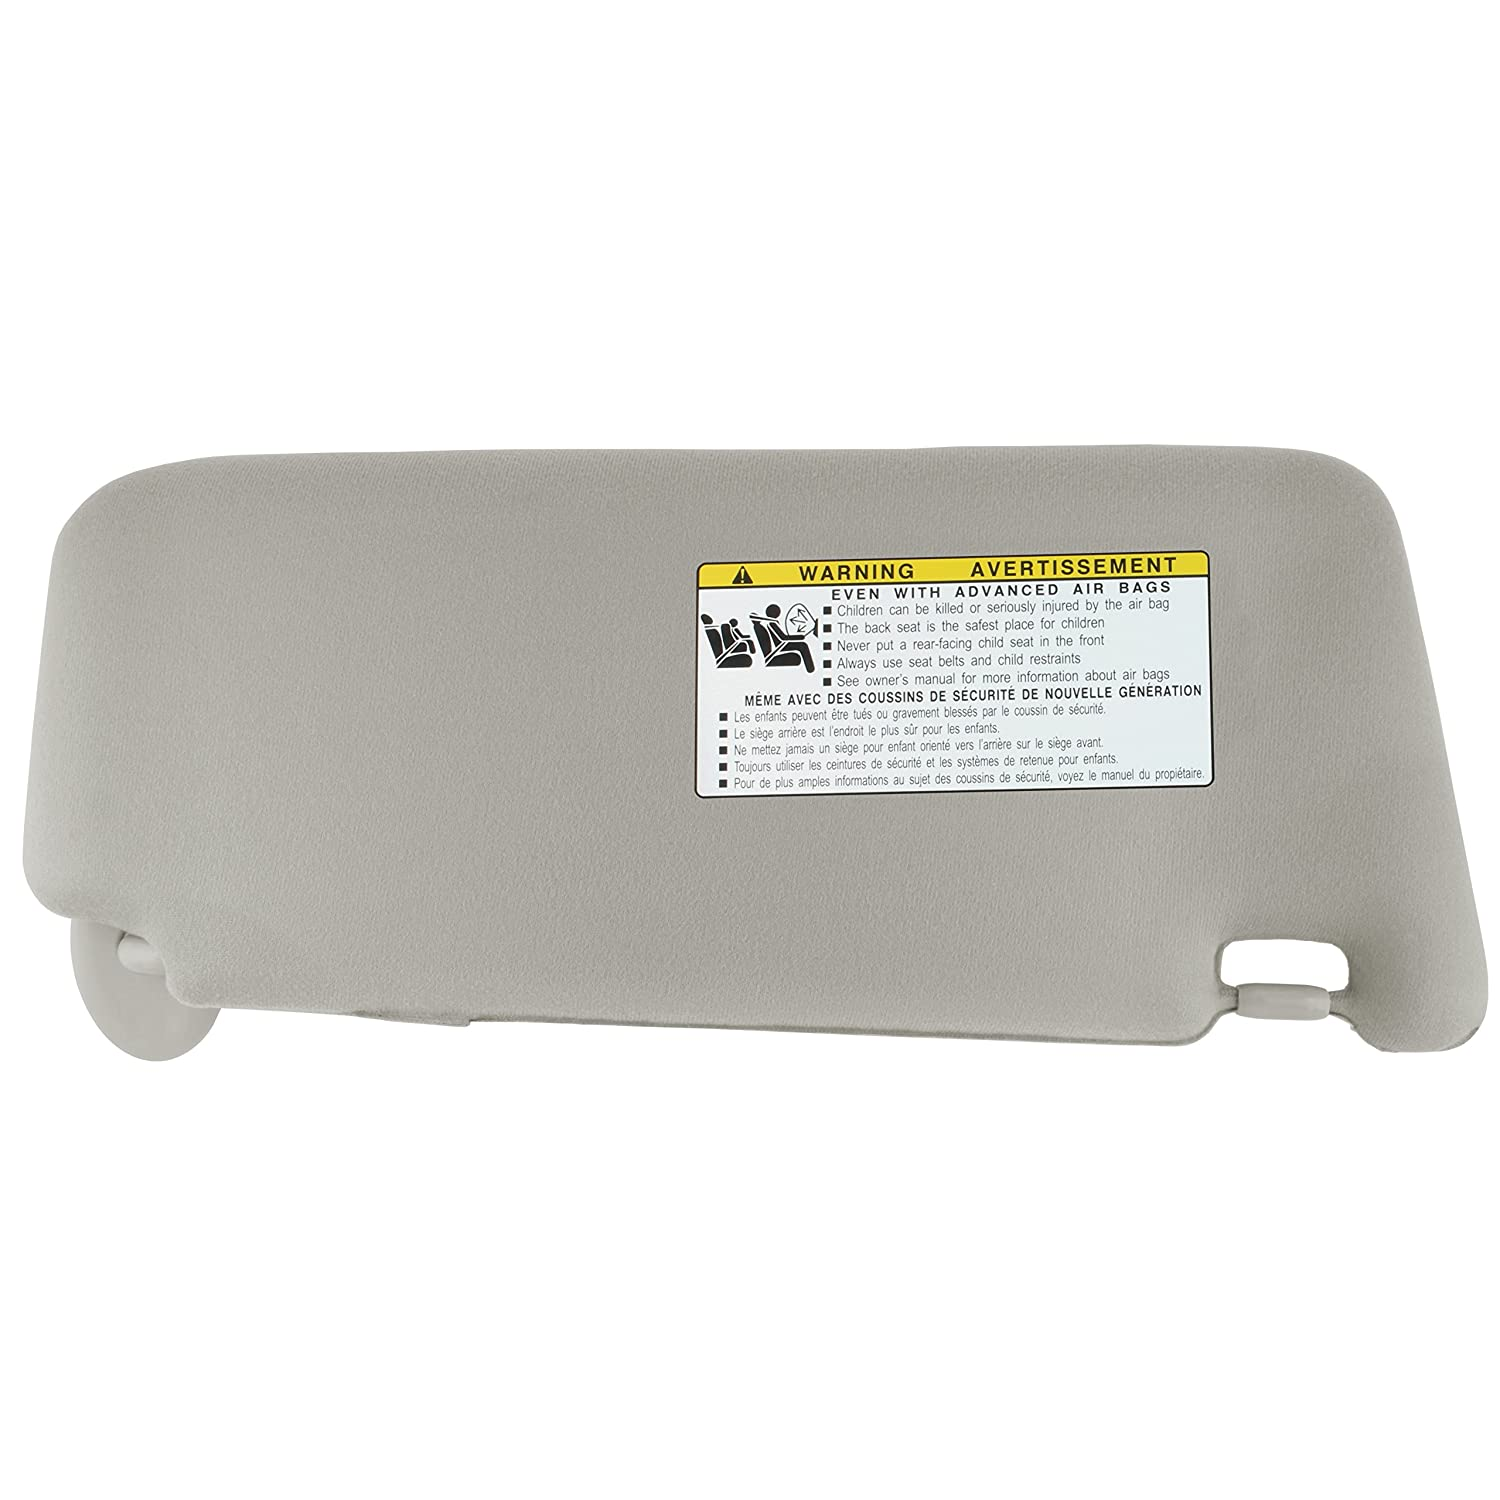 IAMAUTO 14928 New Sun Visor Left Driver Gray for 2007 2008 2009 2010 2011 Toyota Camry with Sunroof and Light